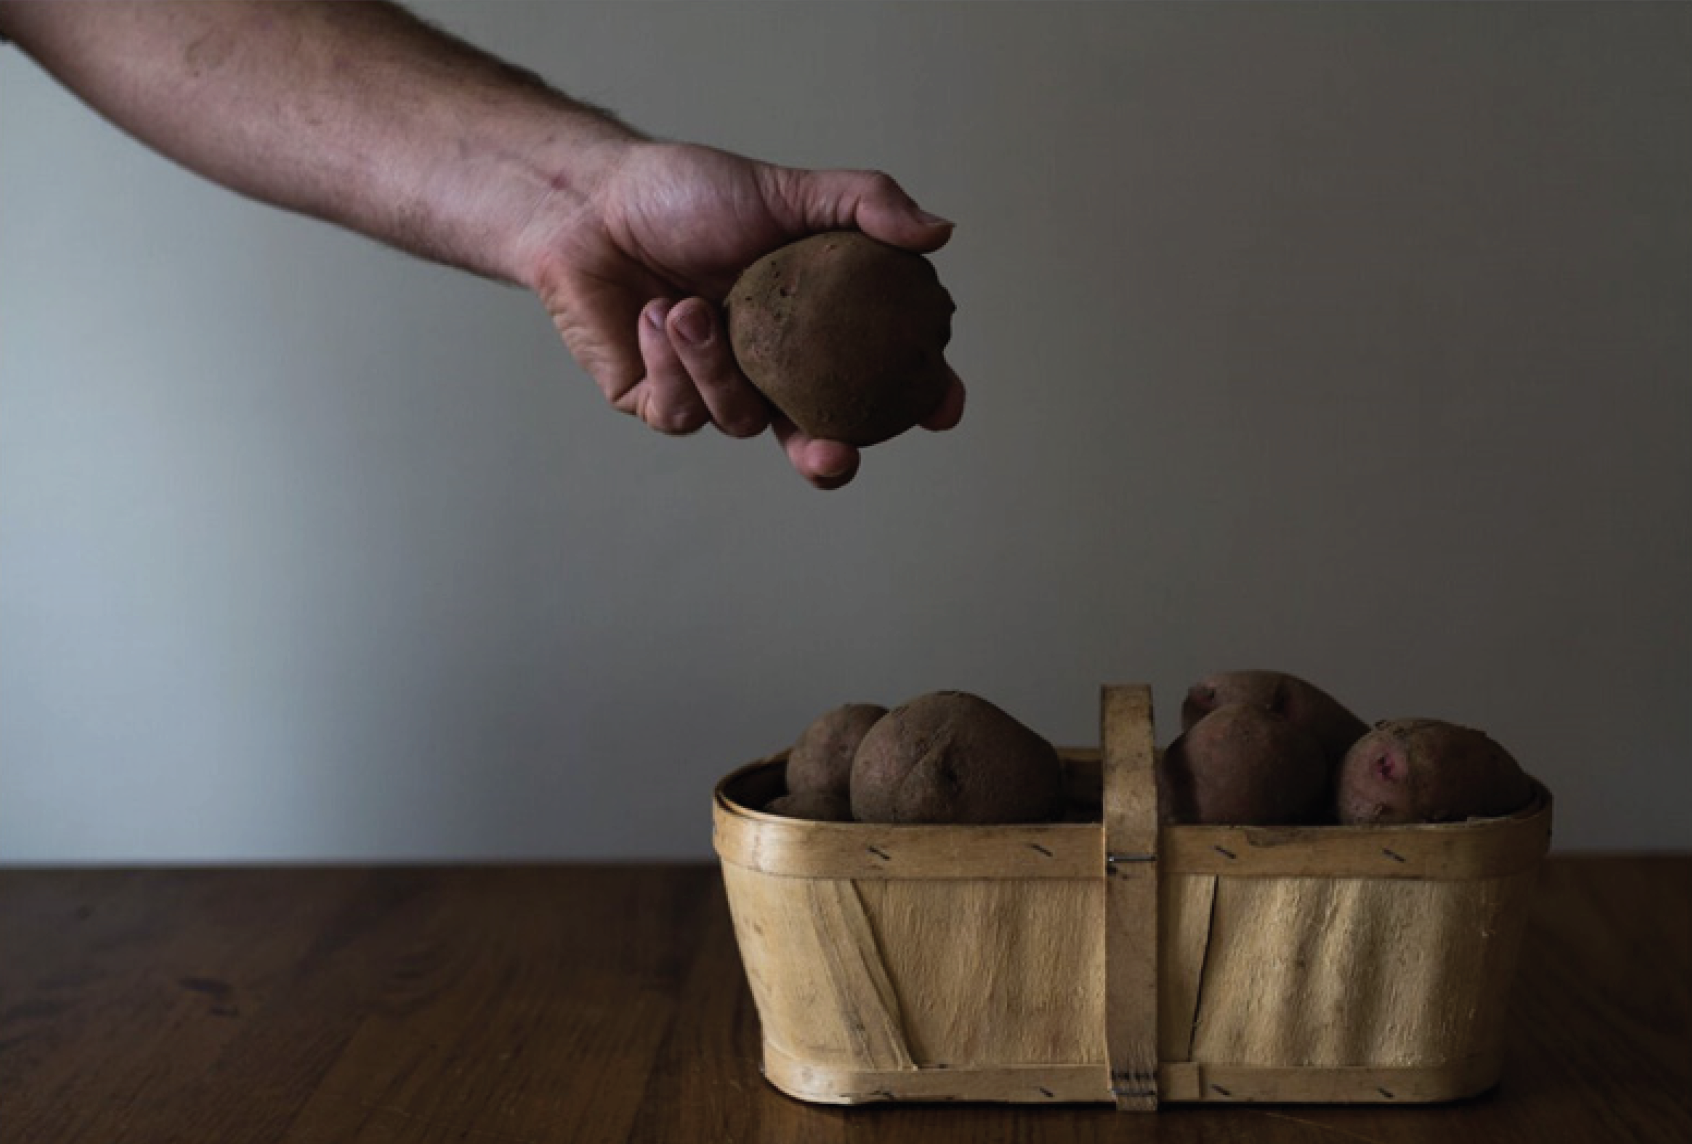 A farmer's hand picking up a potato from a basket.